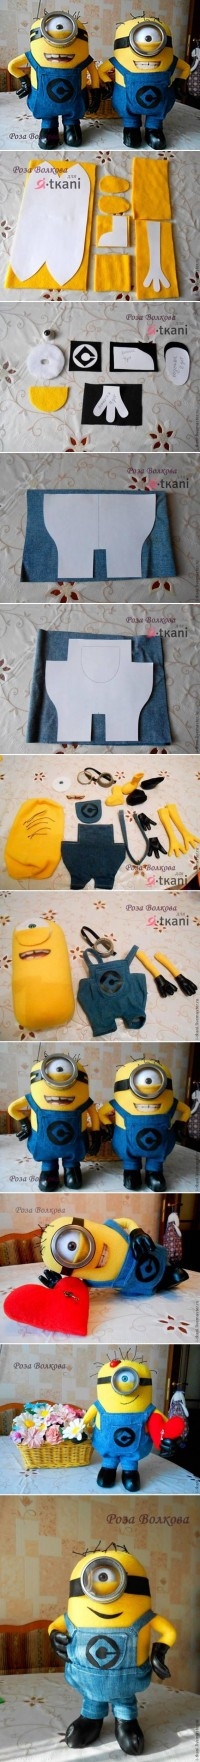 DIY Minion Dolls DIY Projects | UsefulDIY.com